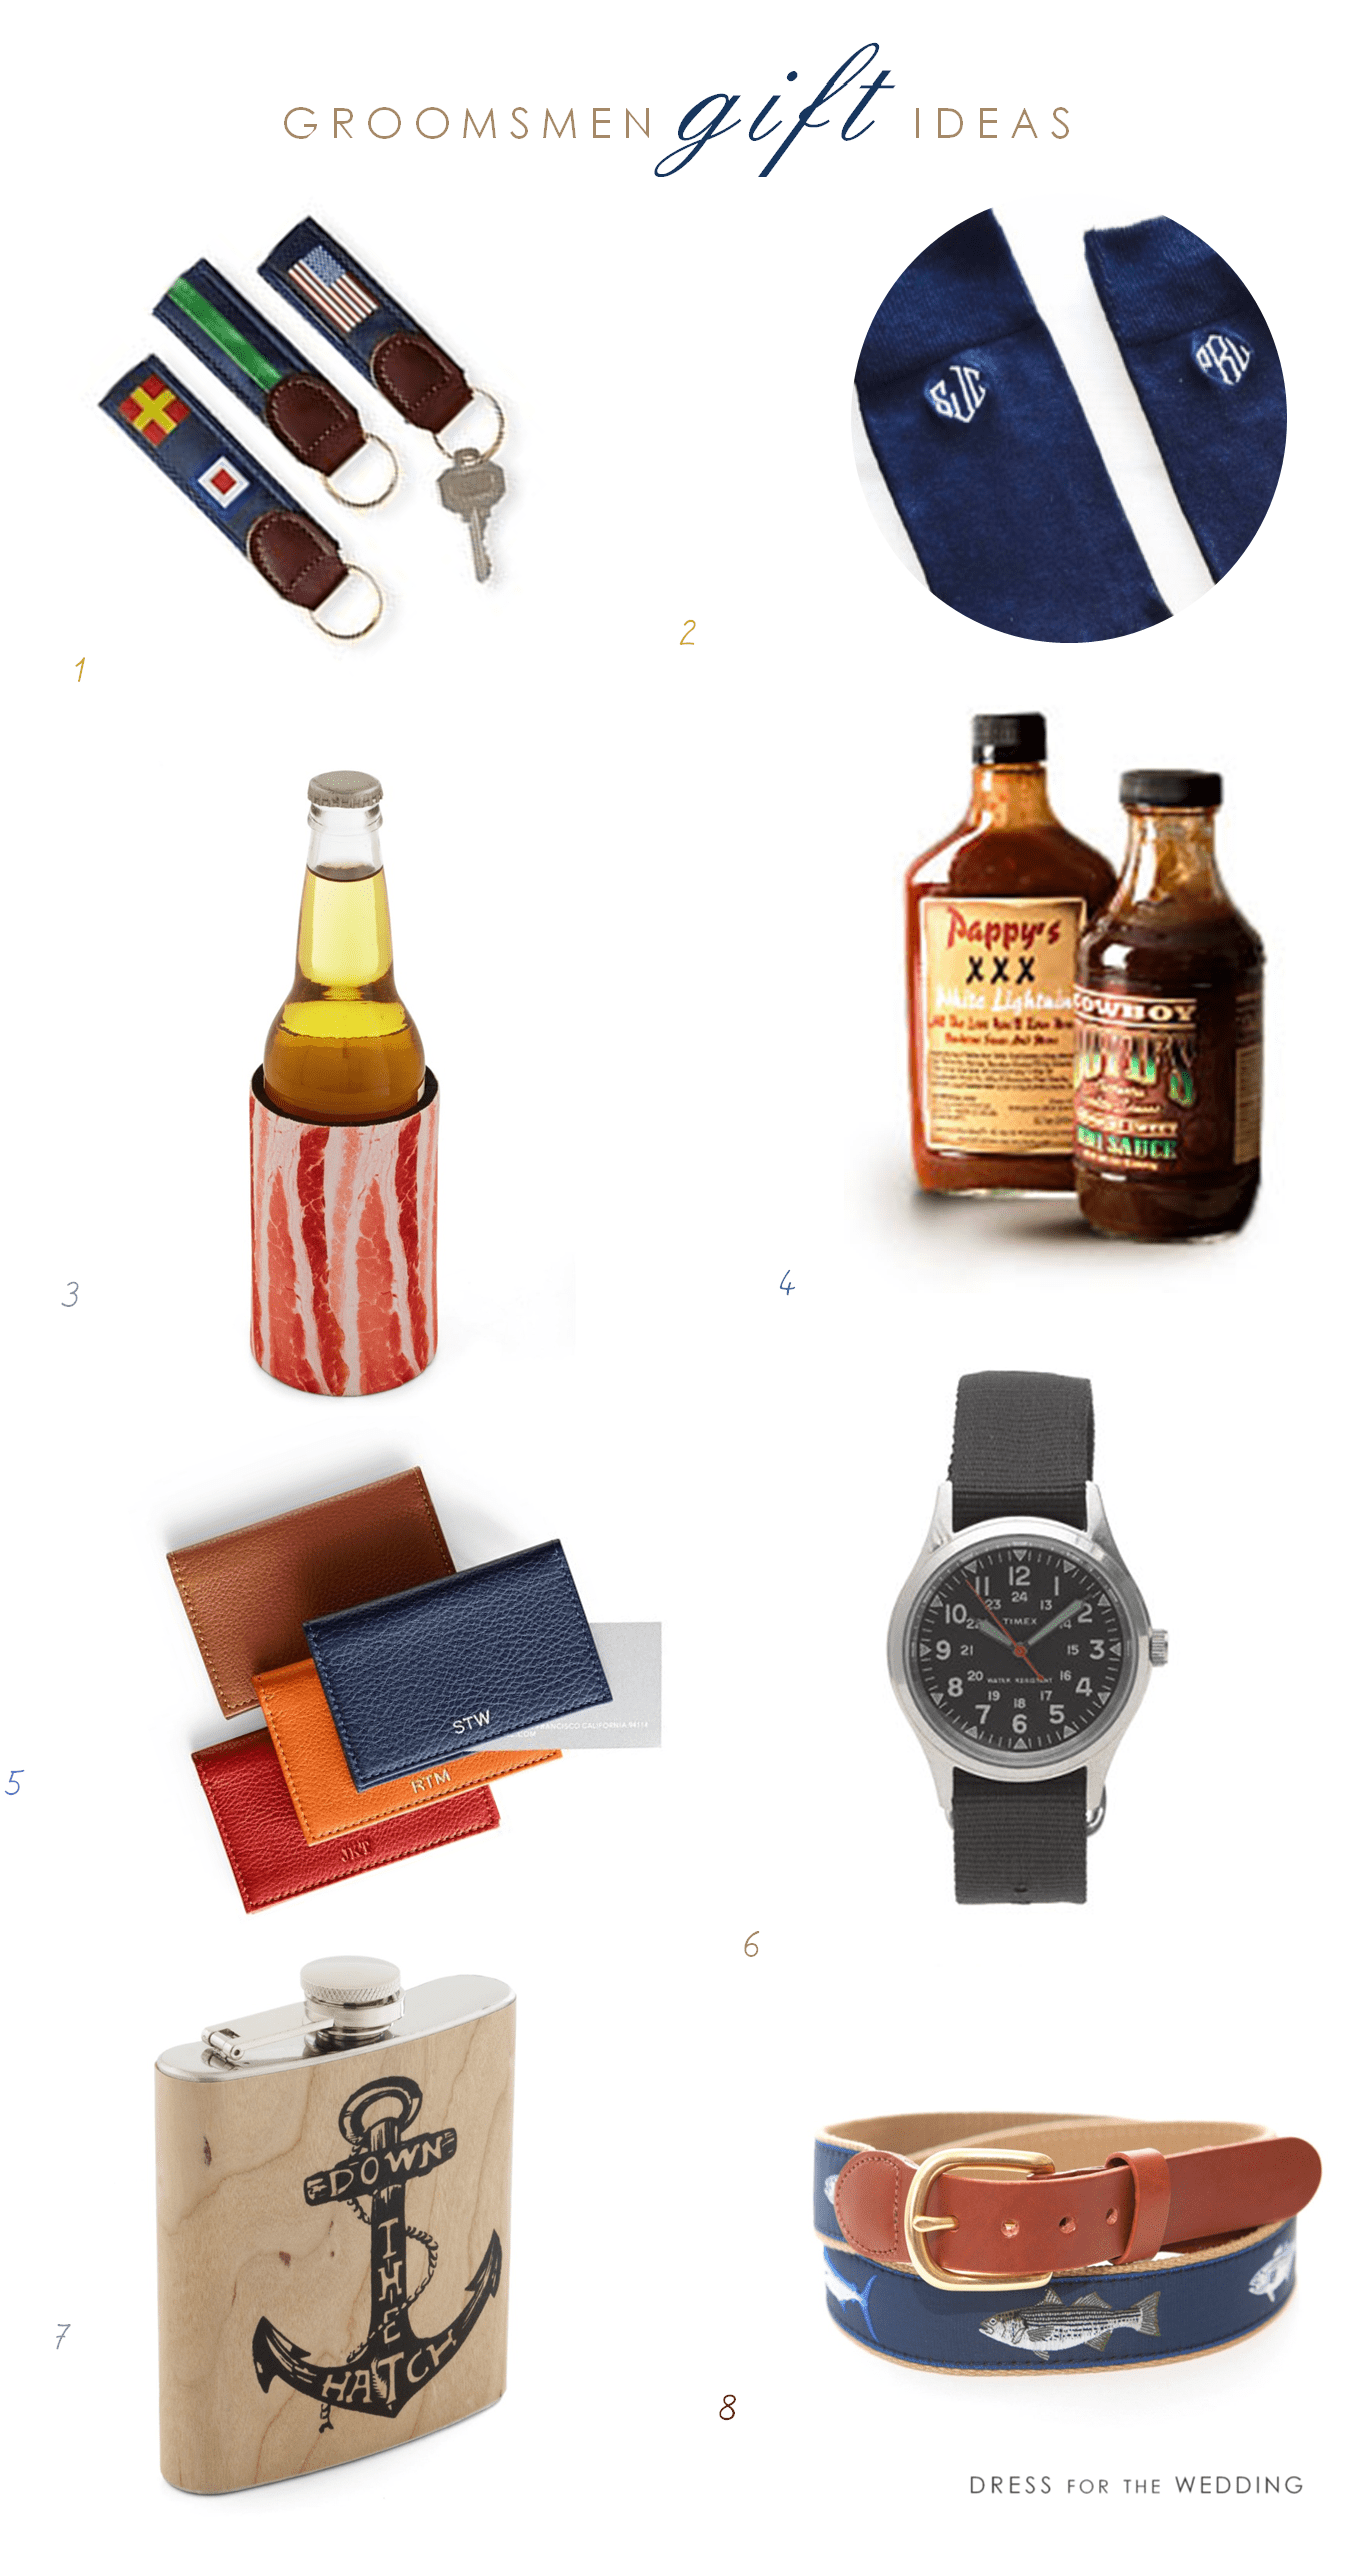 Wedding Gifts For Teenage Groomsmen : gift-ideas-for-your-groomsmen1.png